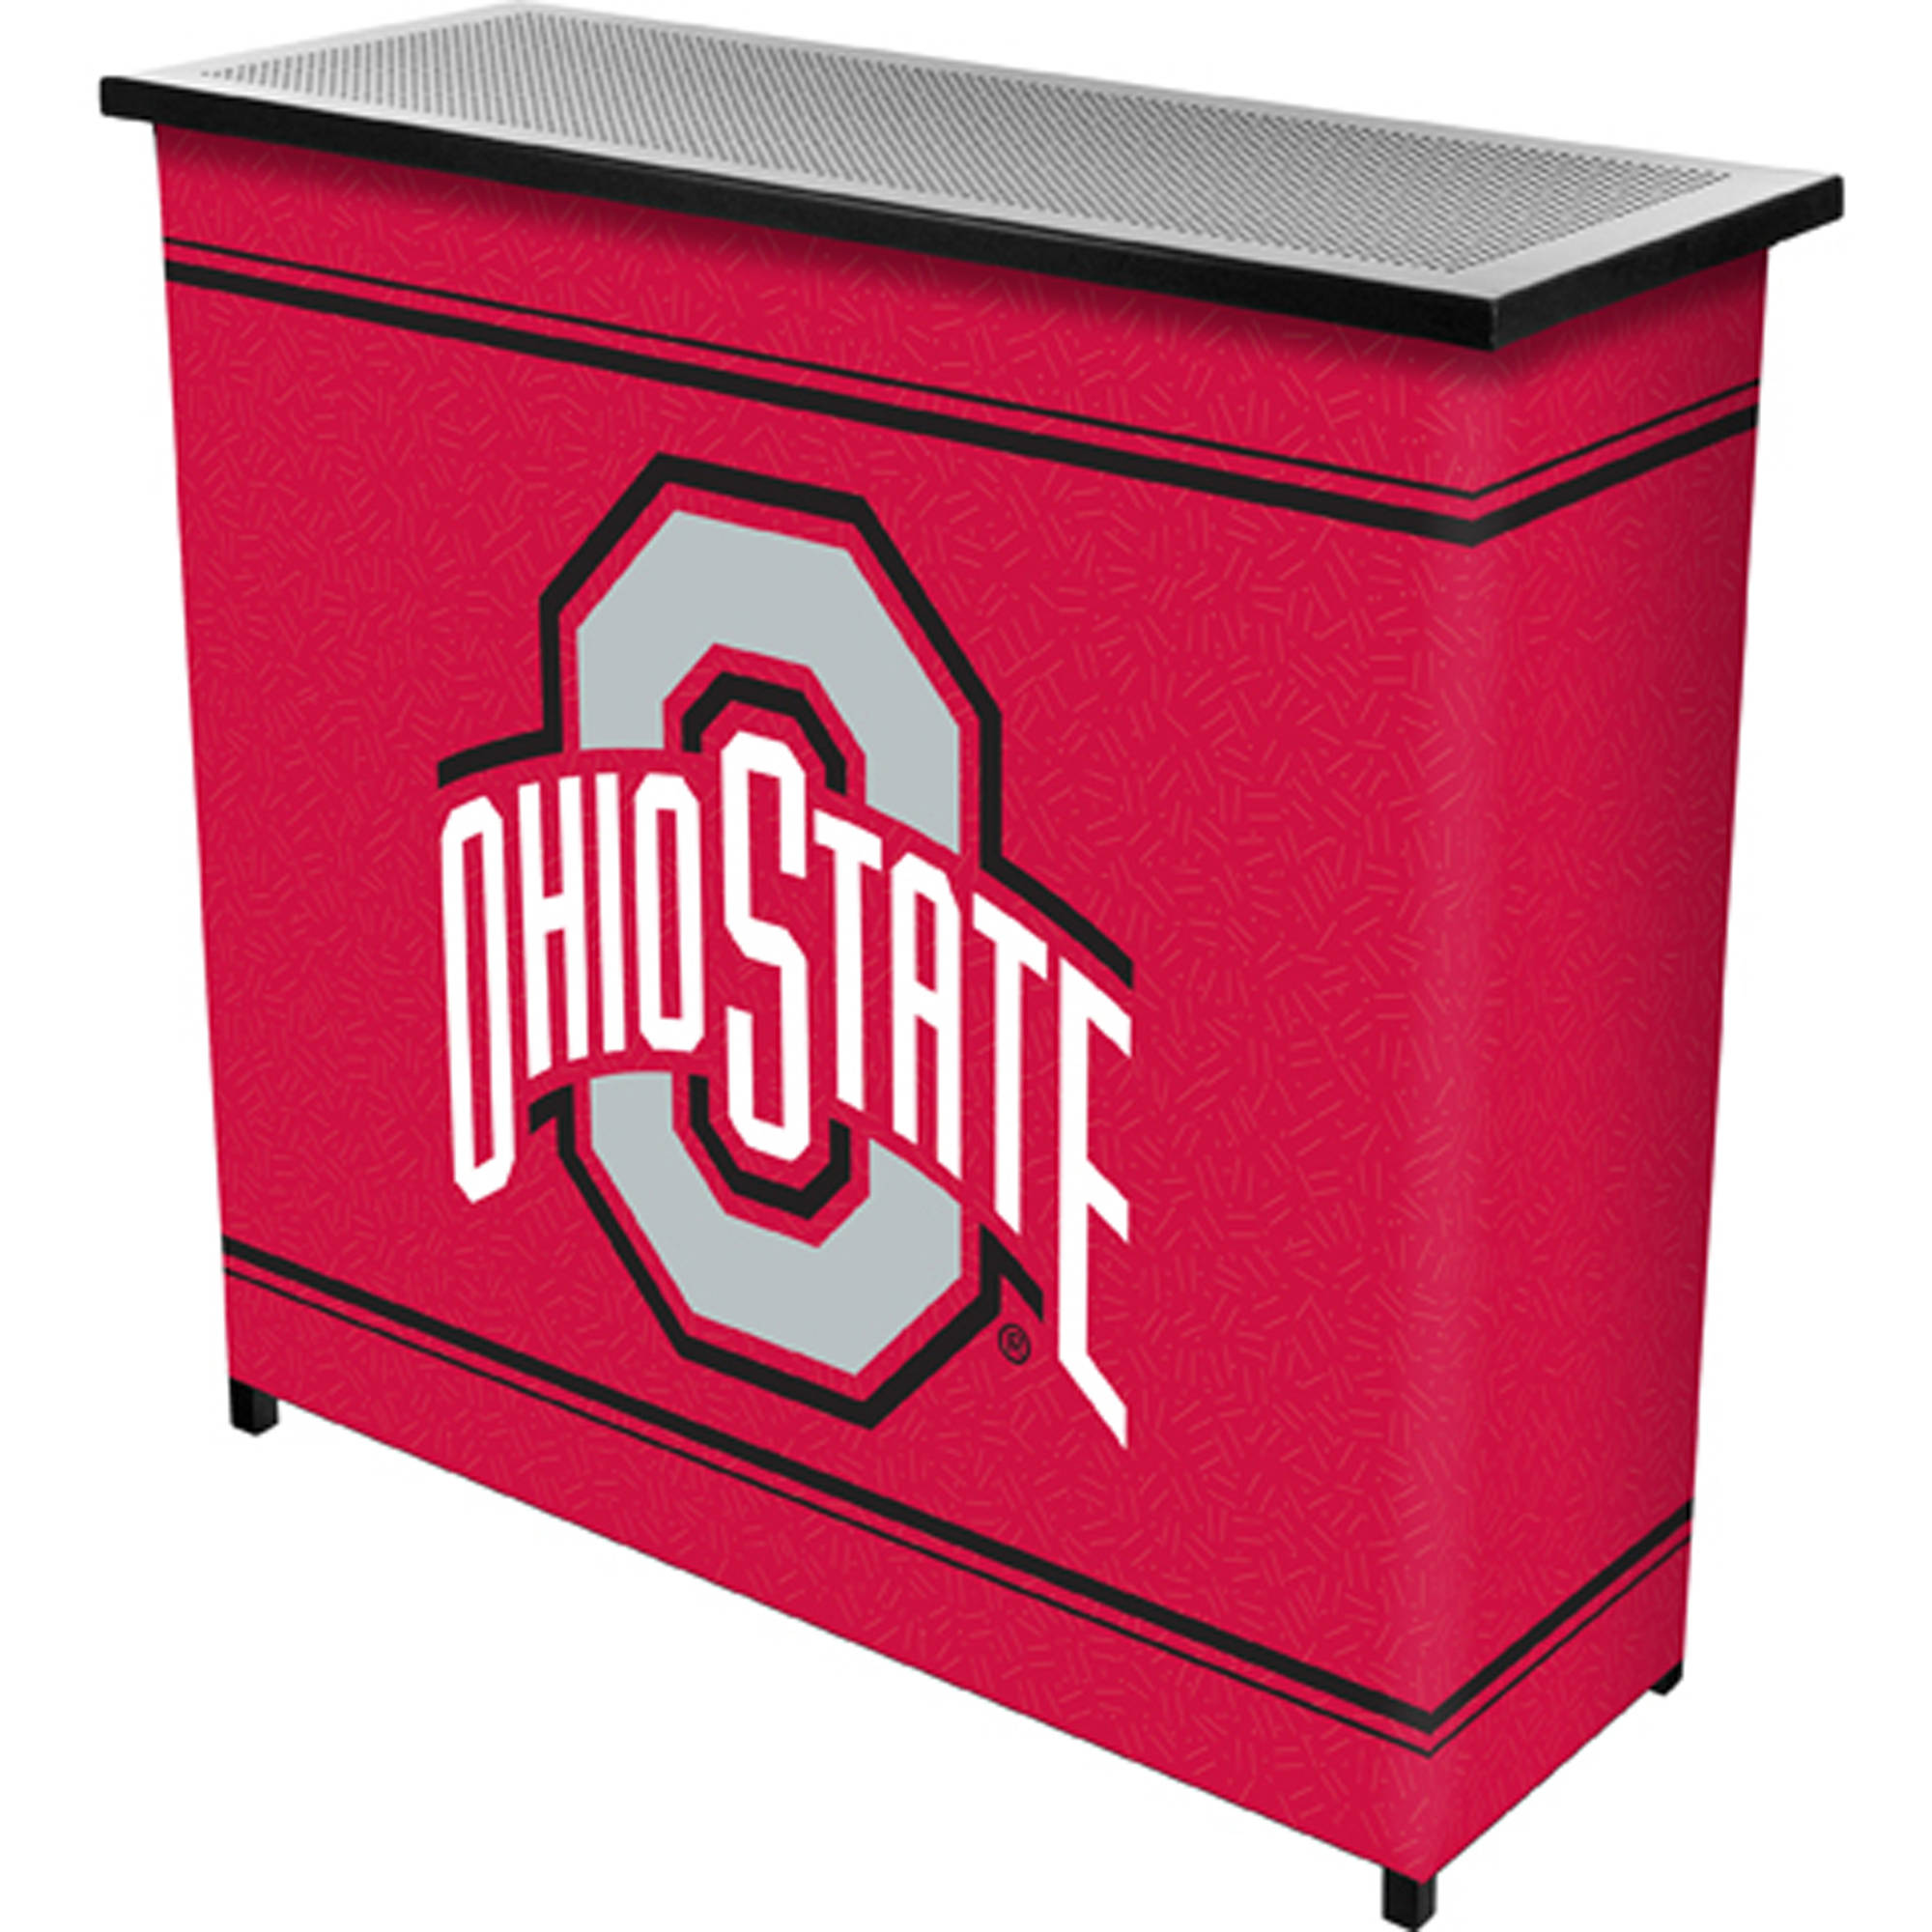 The Ohio State University 2-Shelf Portable Bar with Carrying Case